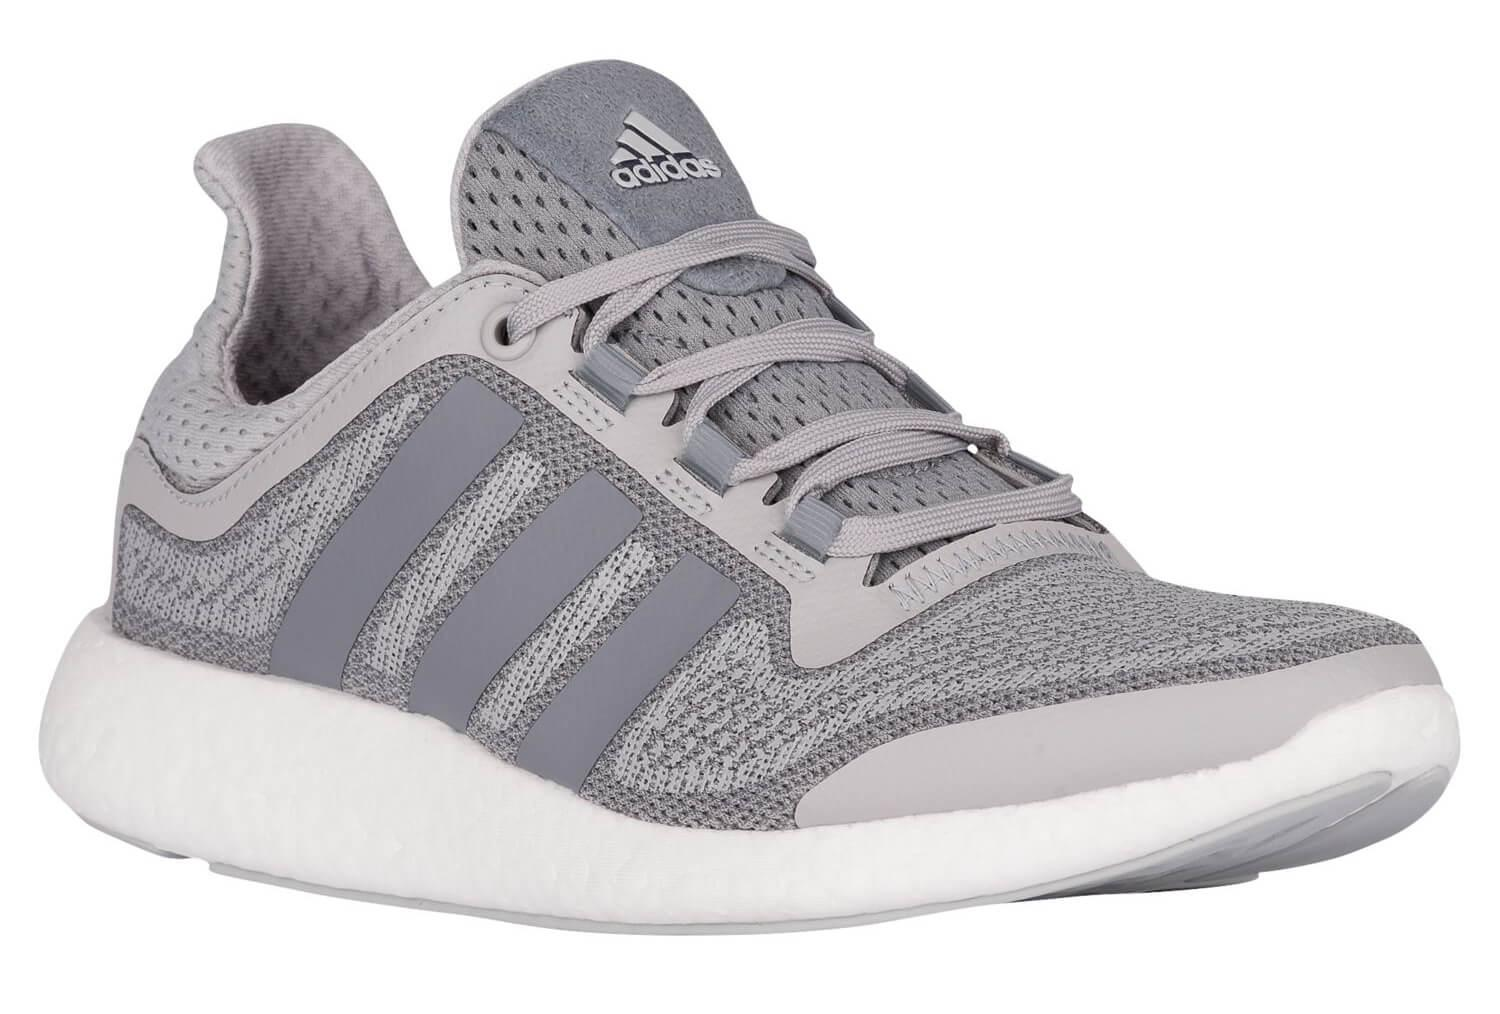 Adidas Pure Boost 2.0 Fully Reviewed 4